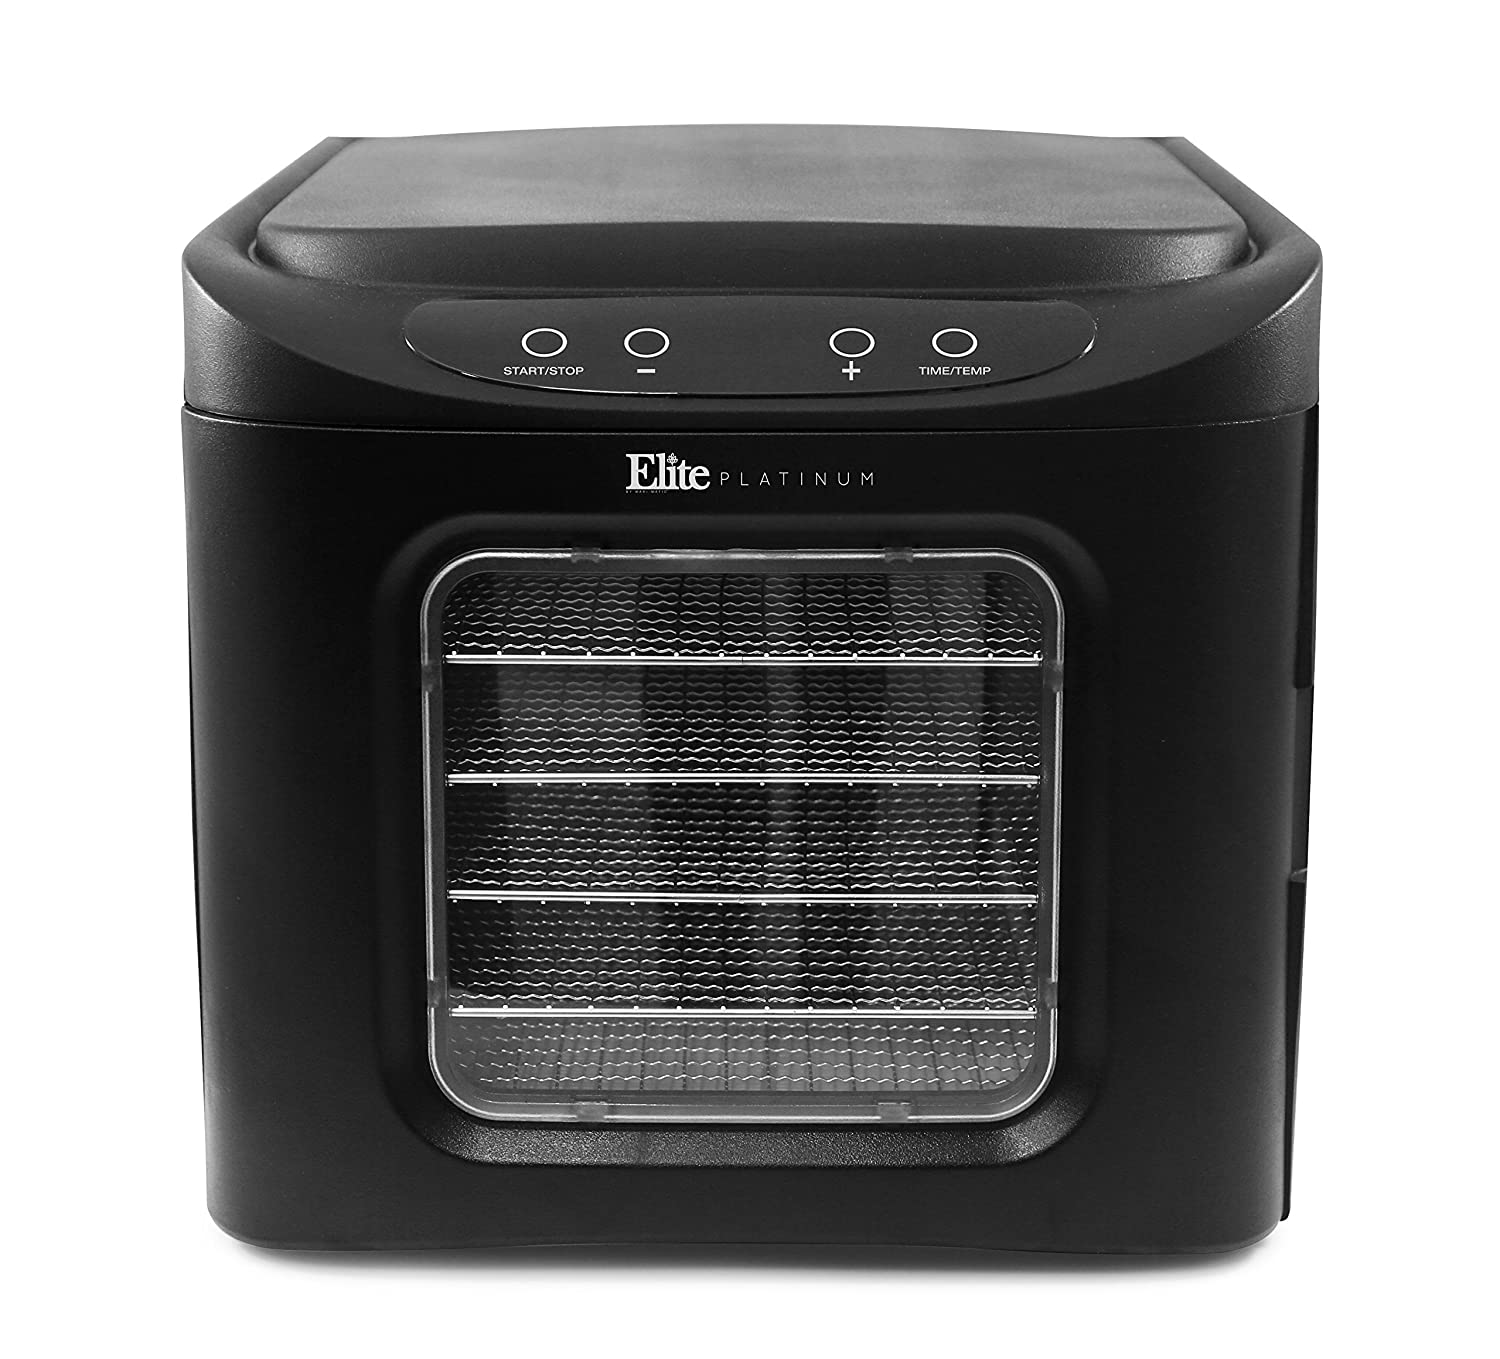 Elite Platinum Maxi-Matic EFD-313B Digital Food Dehydrator with Stainless Steel Trays, Adjustable Timer and Temperature Controls with Auto Shut-Off BPA-Free Trays, 6 Trays, Black